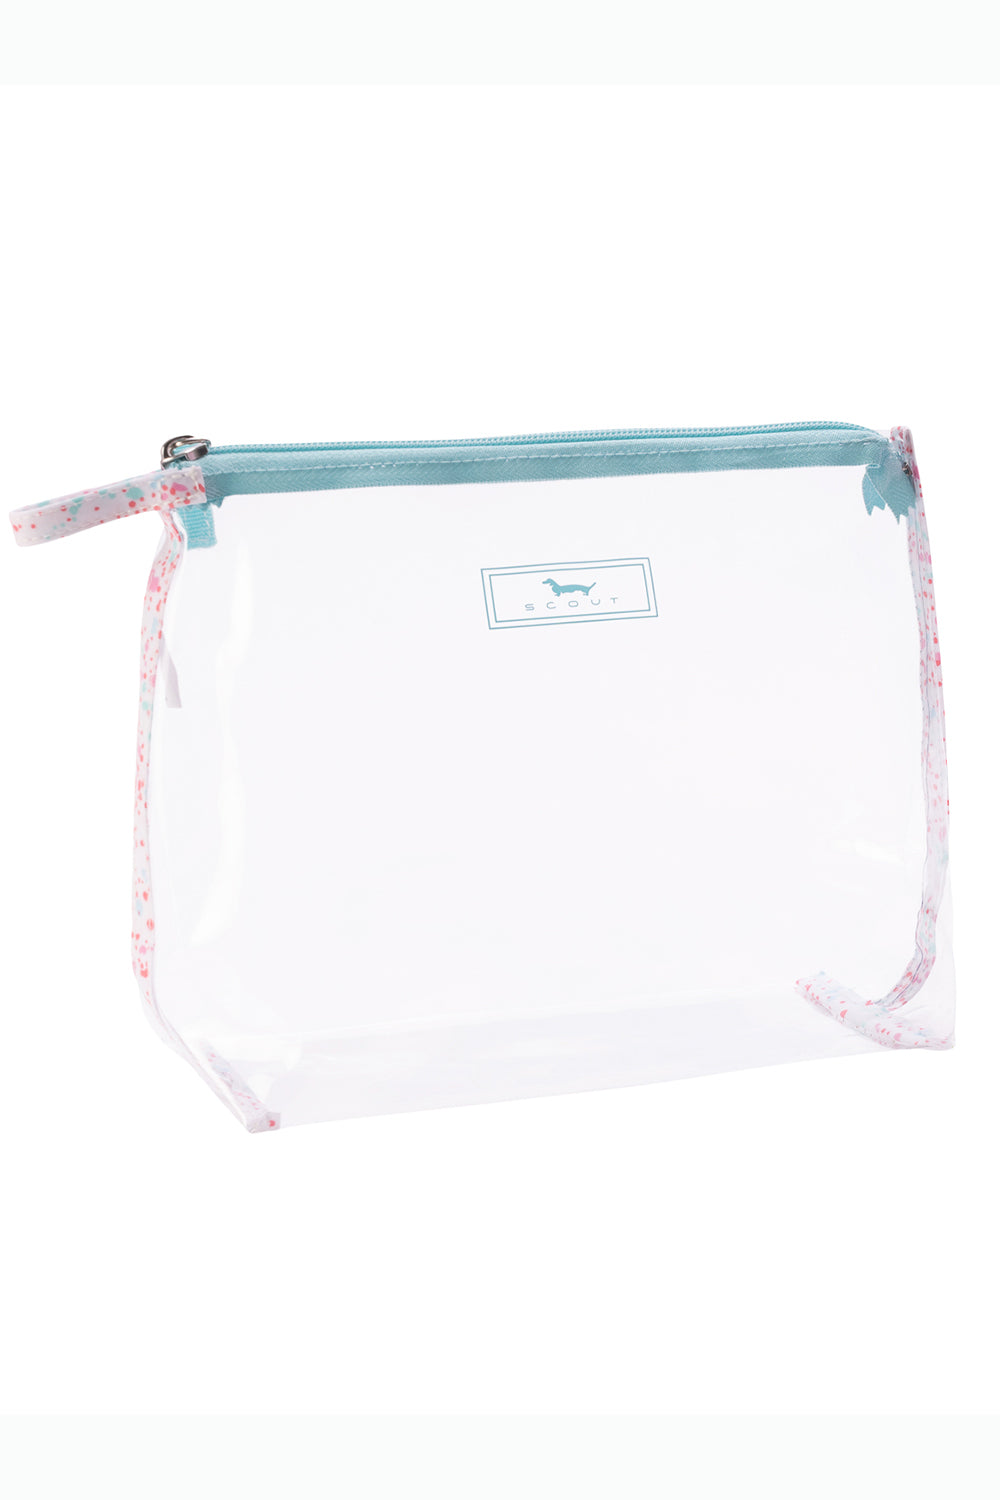 "In The Clear Cosmetic Bag - ""Splatti Labelle"" SS20"